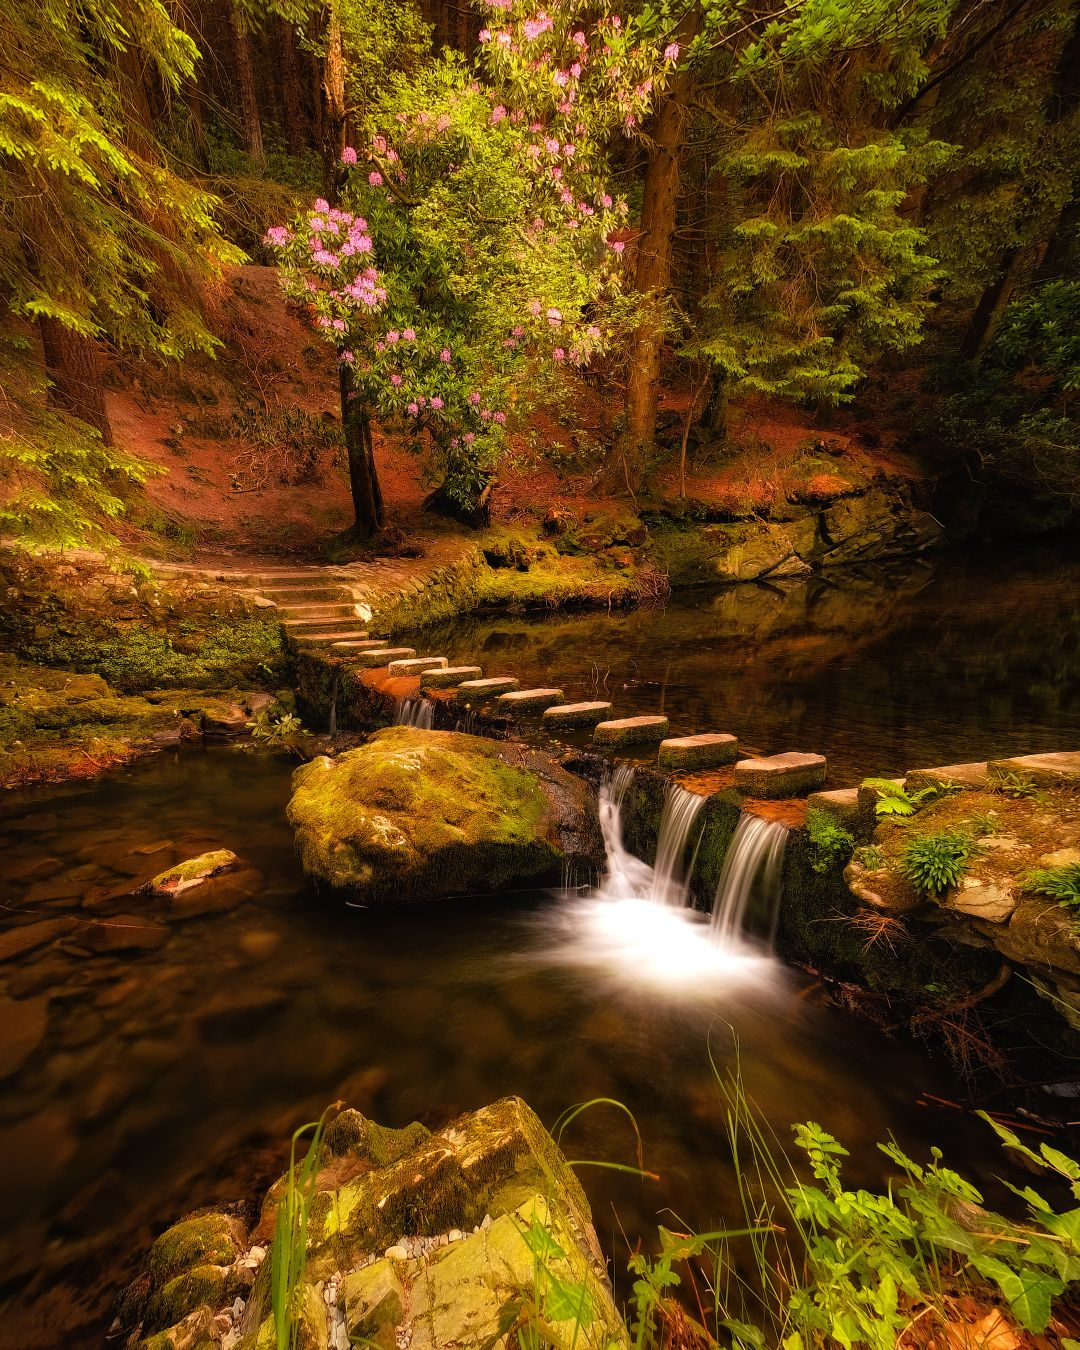 ...Fairy place... ireland ni nature outdoors landscape long exposure forest wood stream creek waterfall flow fairy tail scenic wonderful picturesque europe